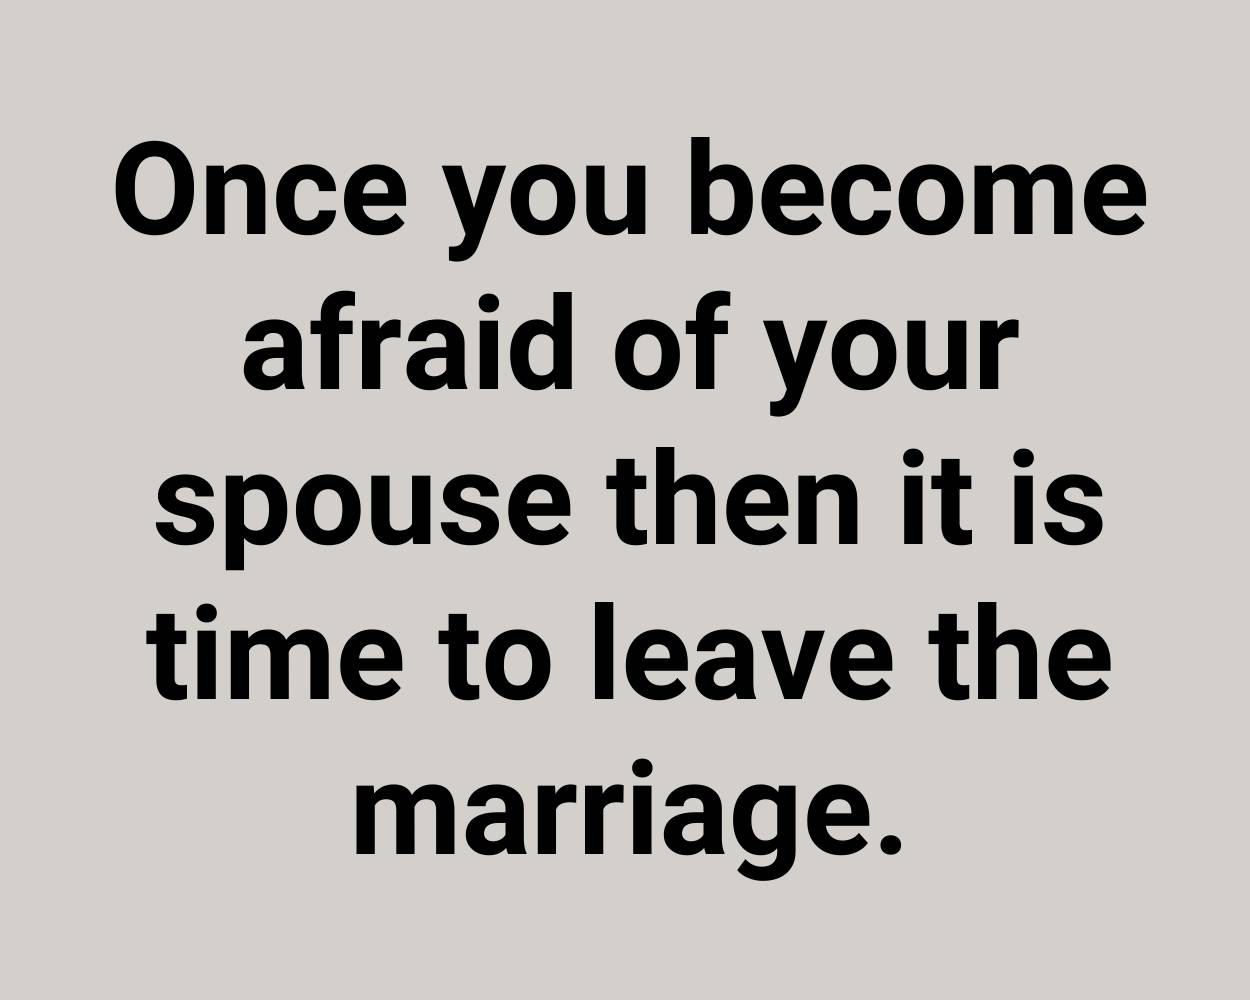 Once you become afraid of your spouse then it is time to leave the marriage.